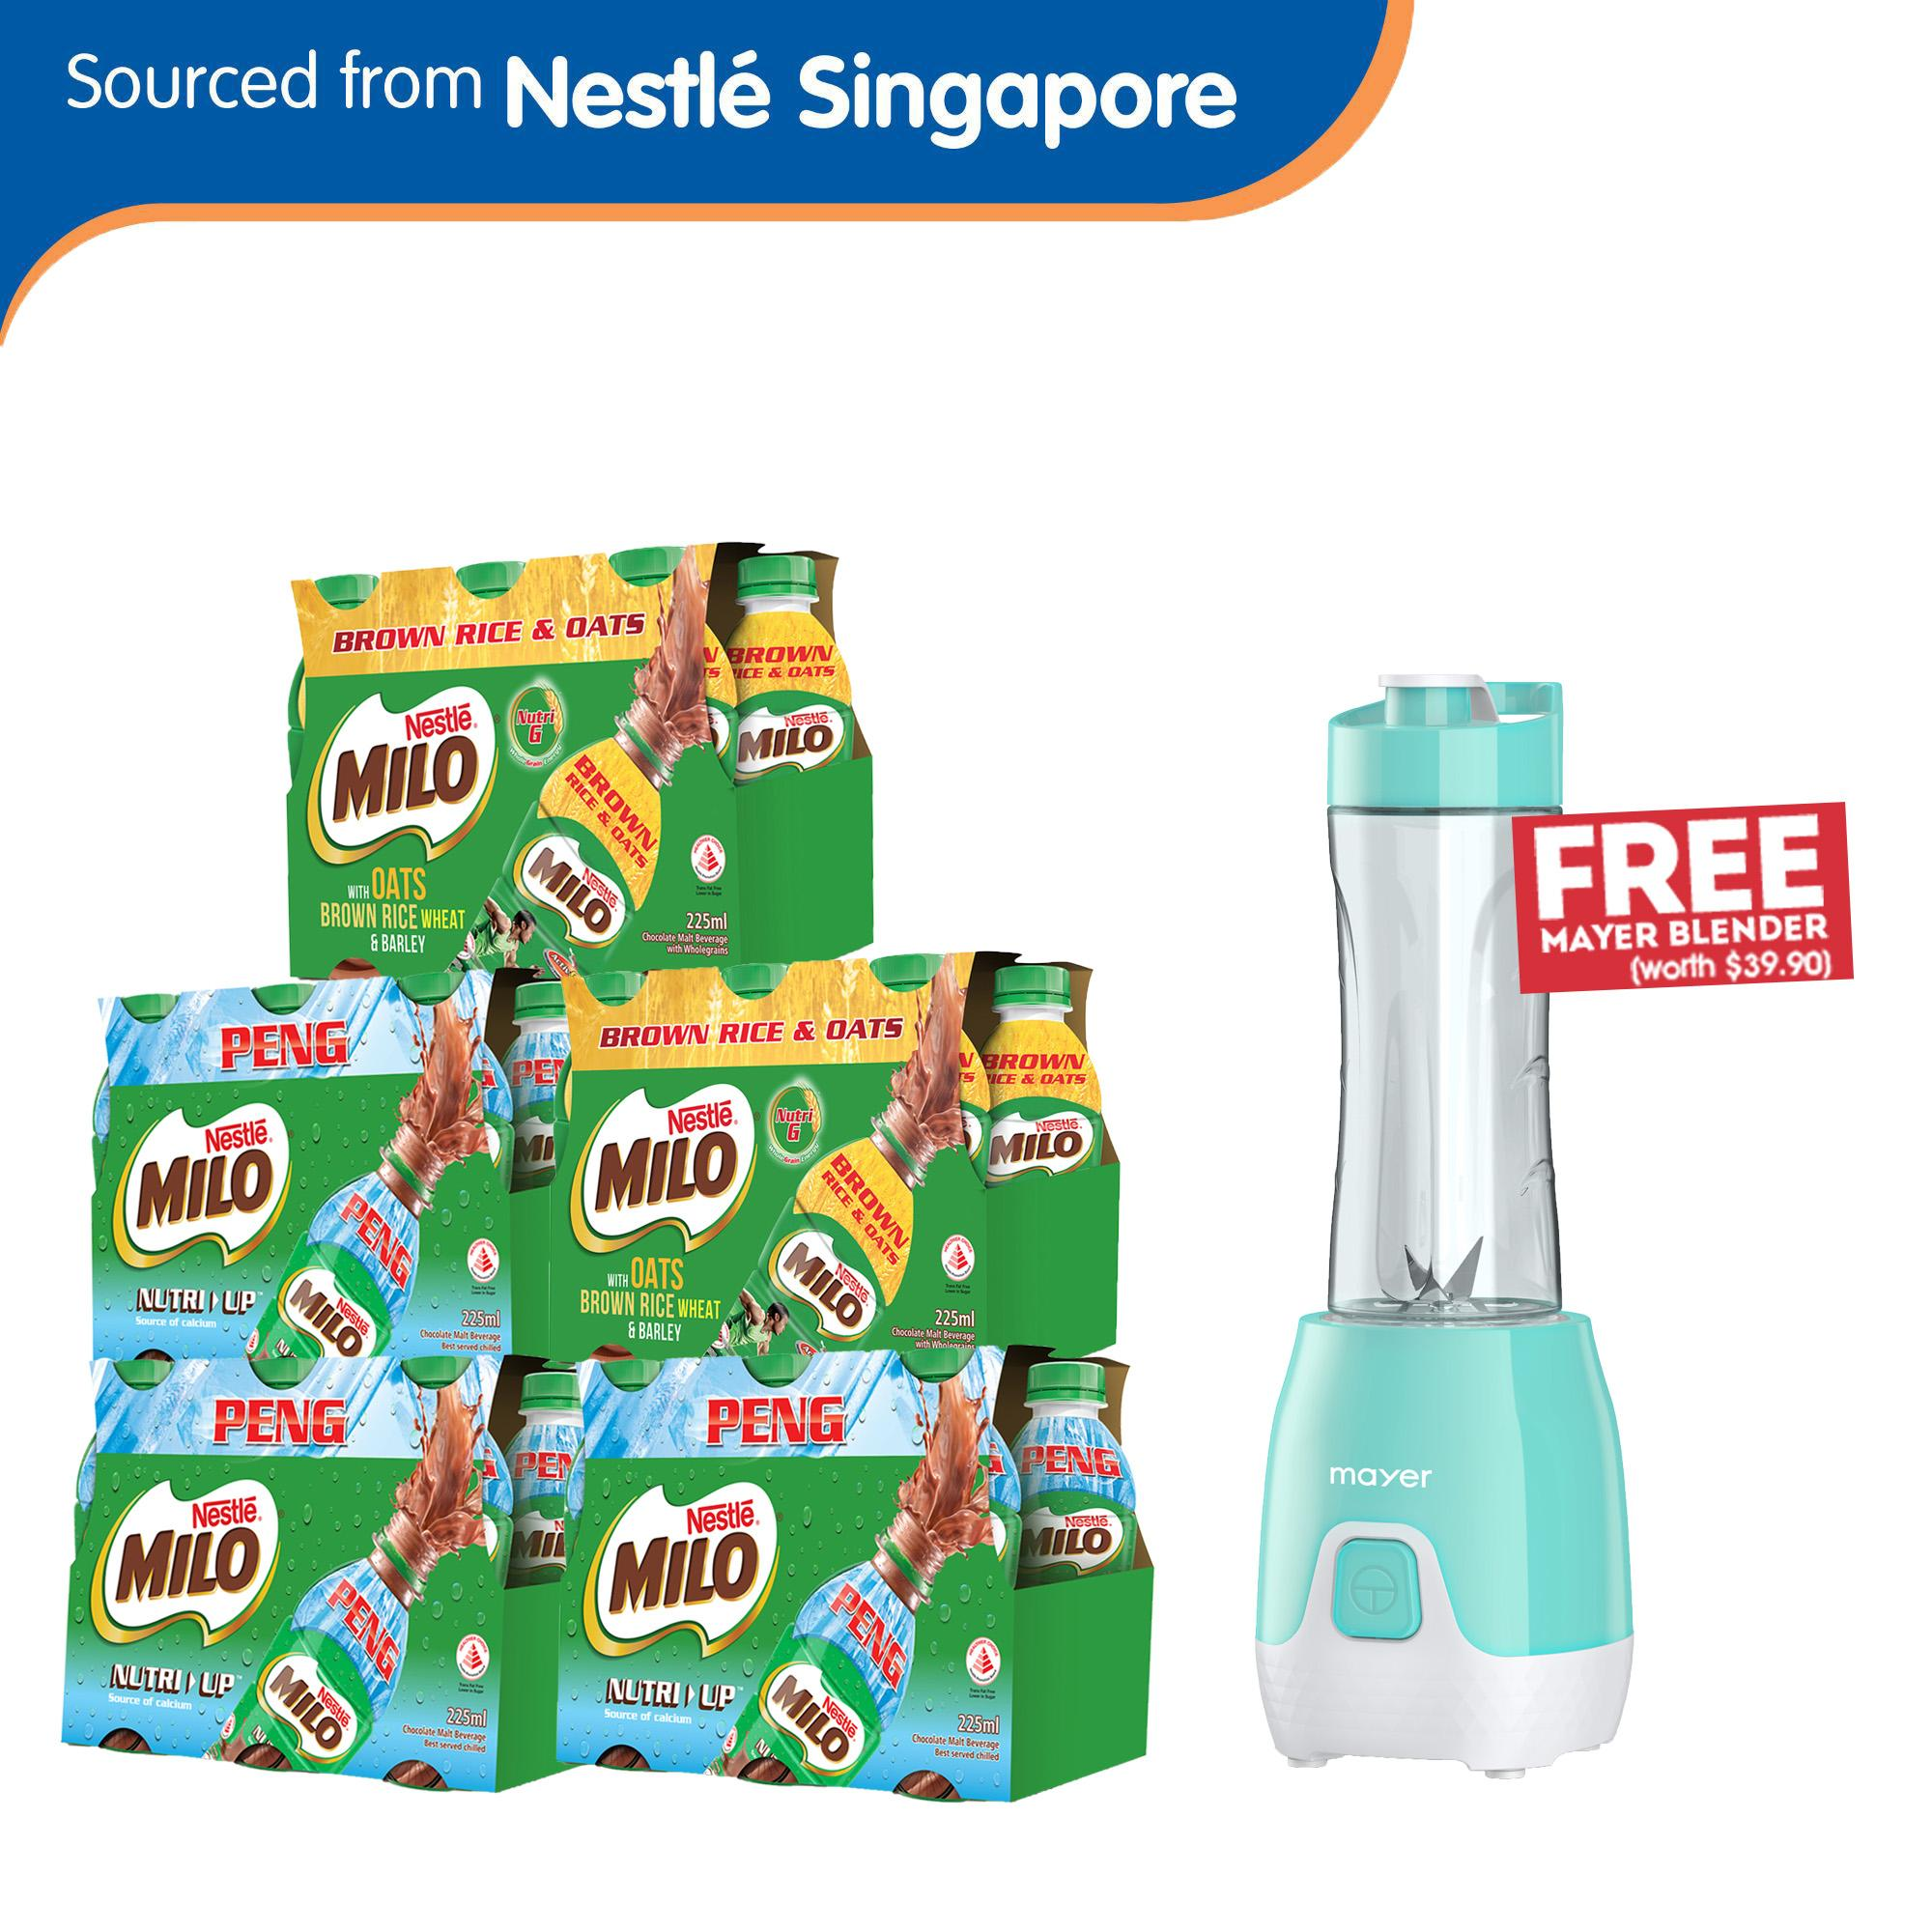 5-clusters30-bottles-milo-nutri-g-peng-free-mayer-blender-worth-3990